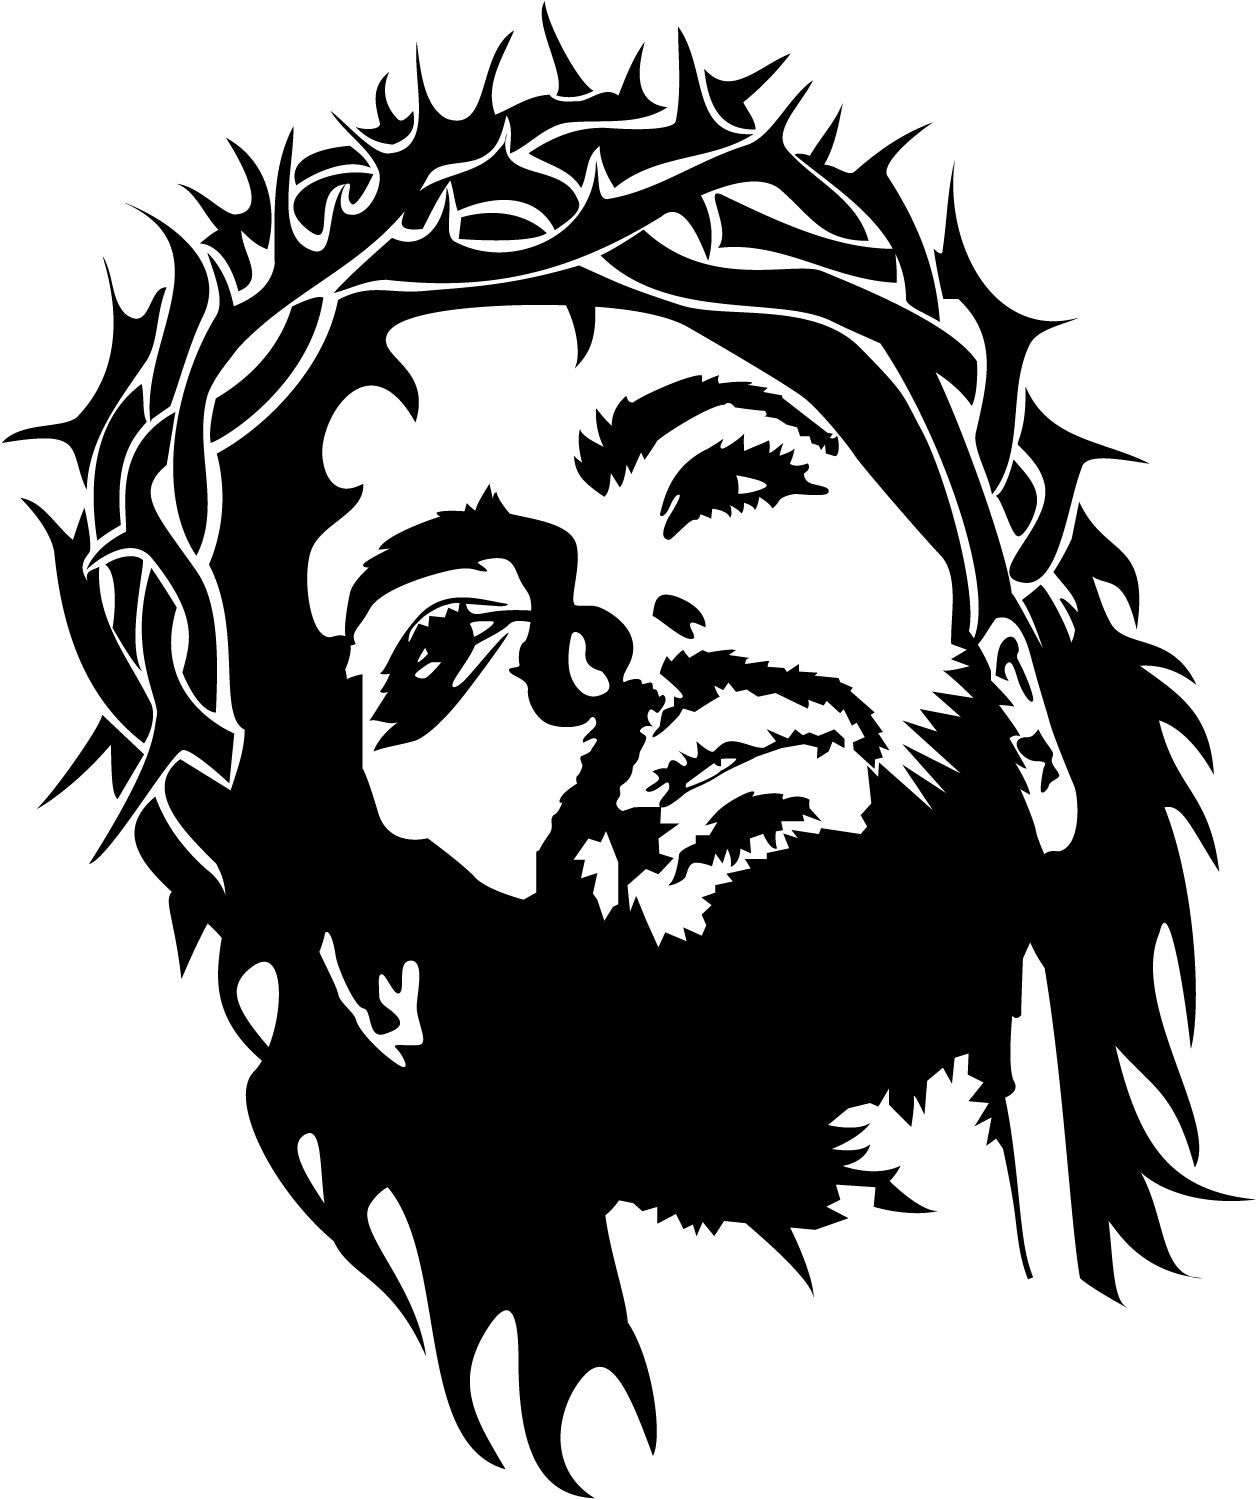 Car sticker design png - Jesus Wall Decal Bring A Little Spirituality To Any Room With Our Jesus Wall Decal Use It Alone Or In Combination Of Our Other Designs